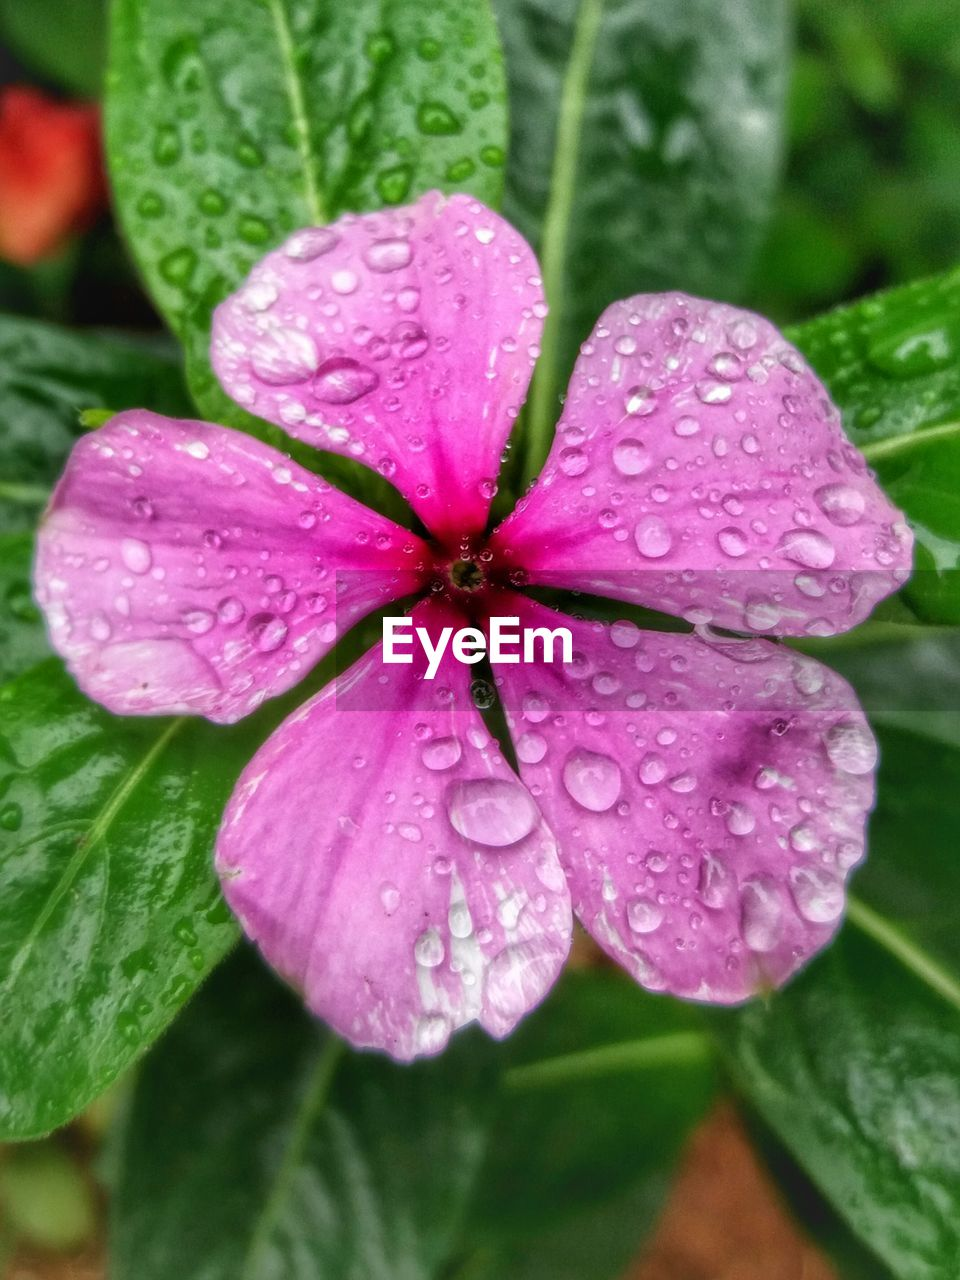 growth, drop, water, wet, petal, day, fragility, flower, beauty in nature, leaf, close-up, flower head, nature, periwinkle, freshness, blooming, no people, outdoors